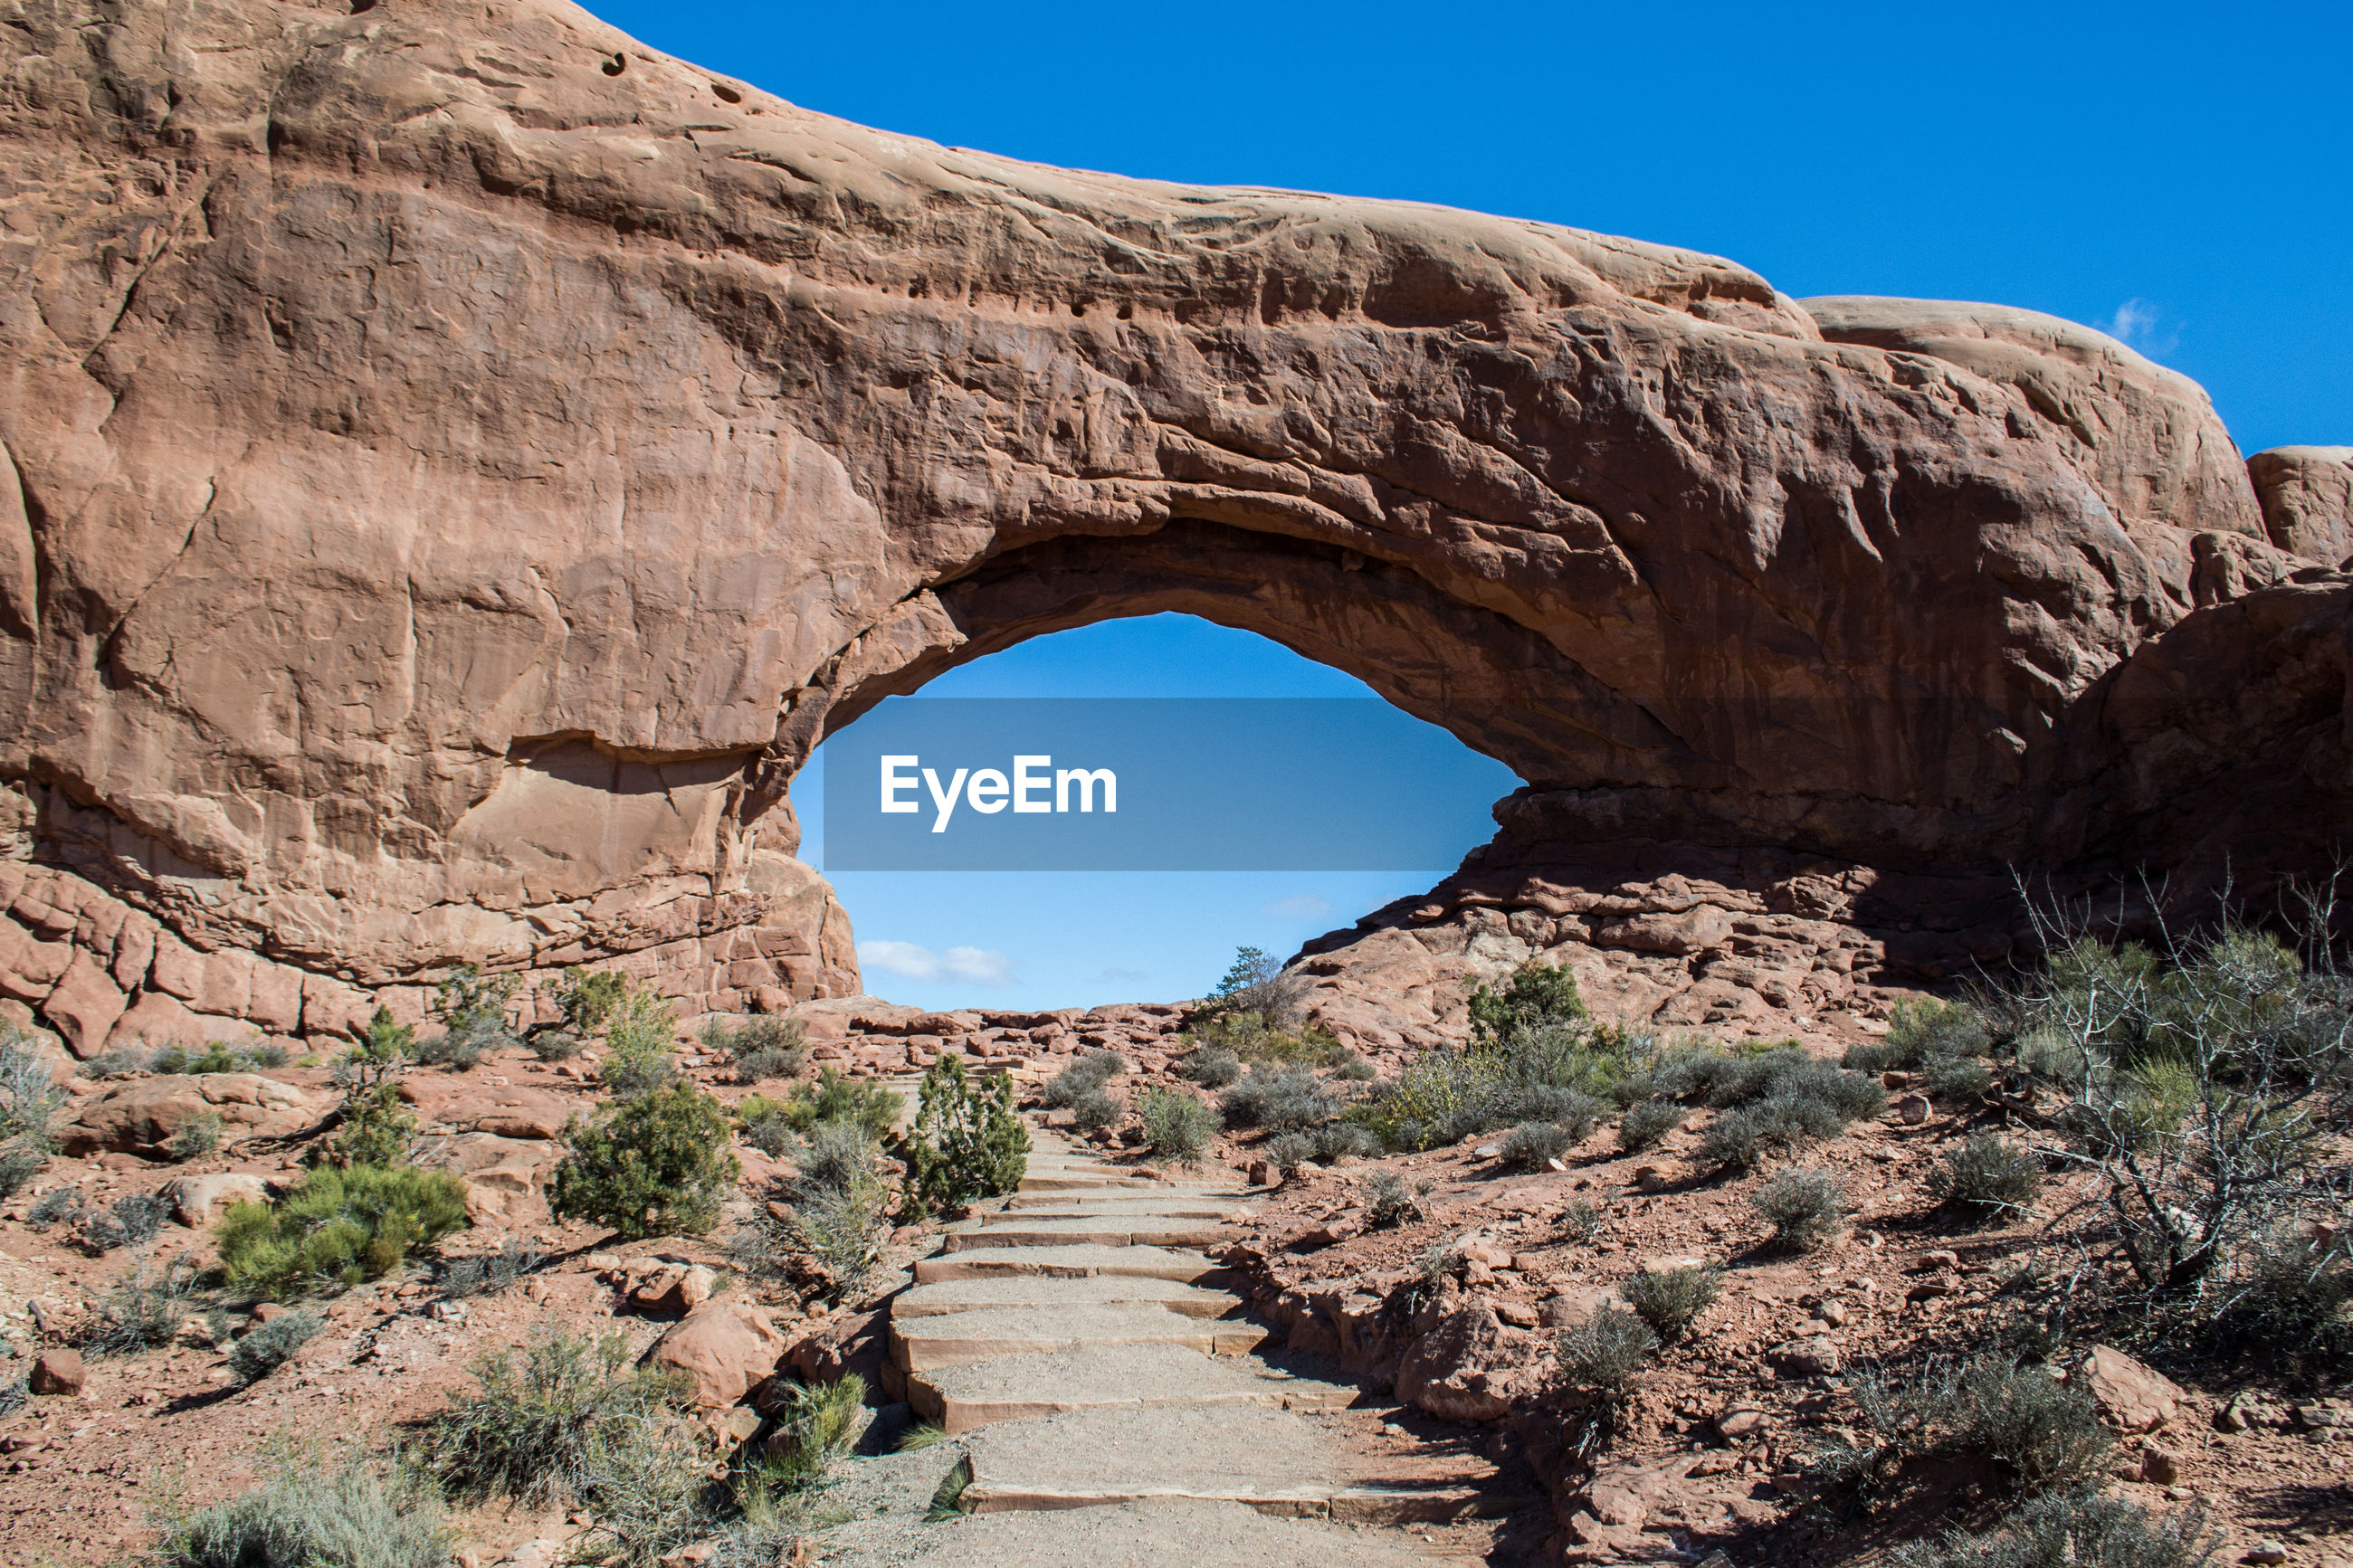 Arches national park, utah easy hiking trail to famous arch